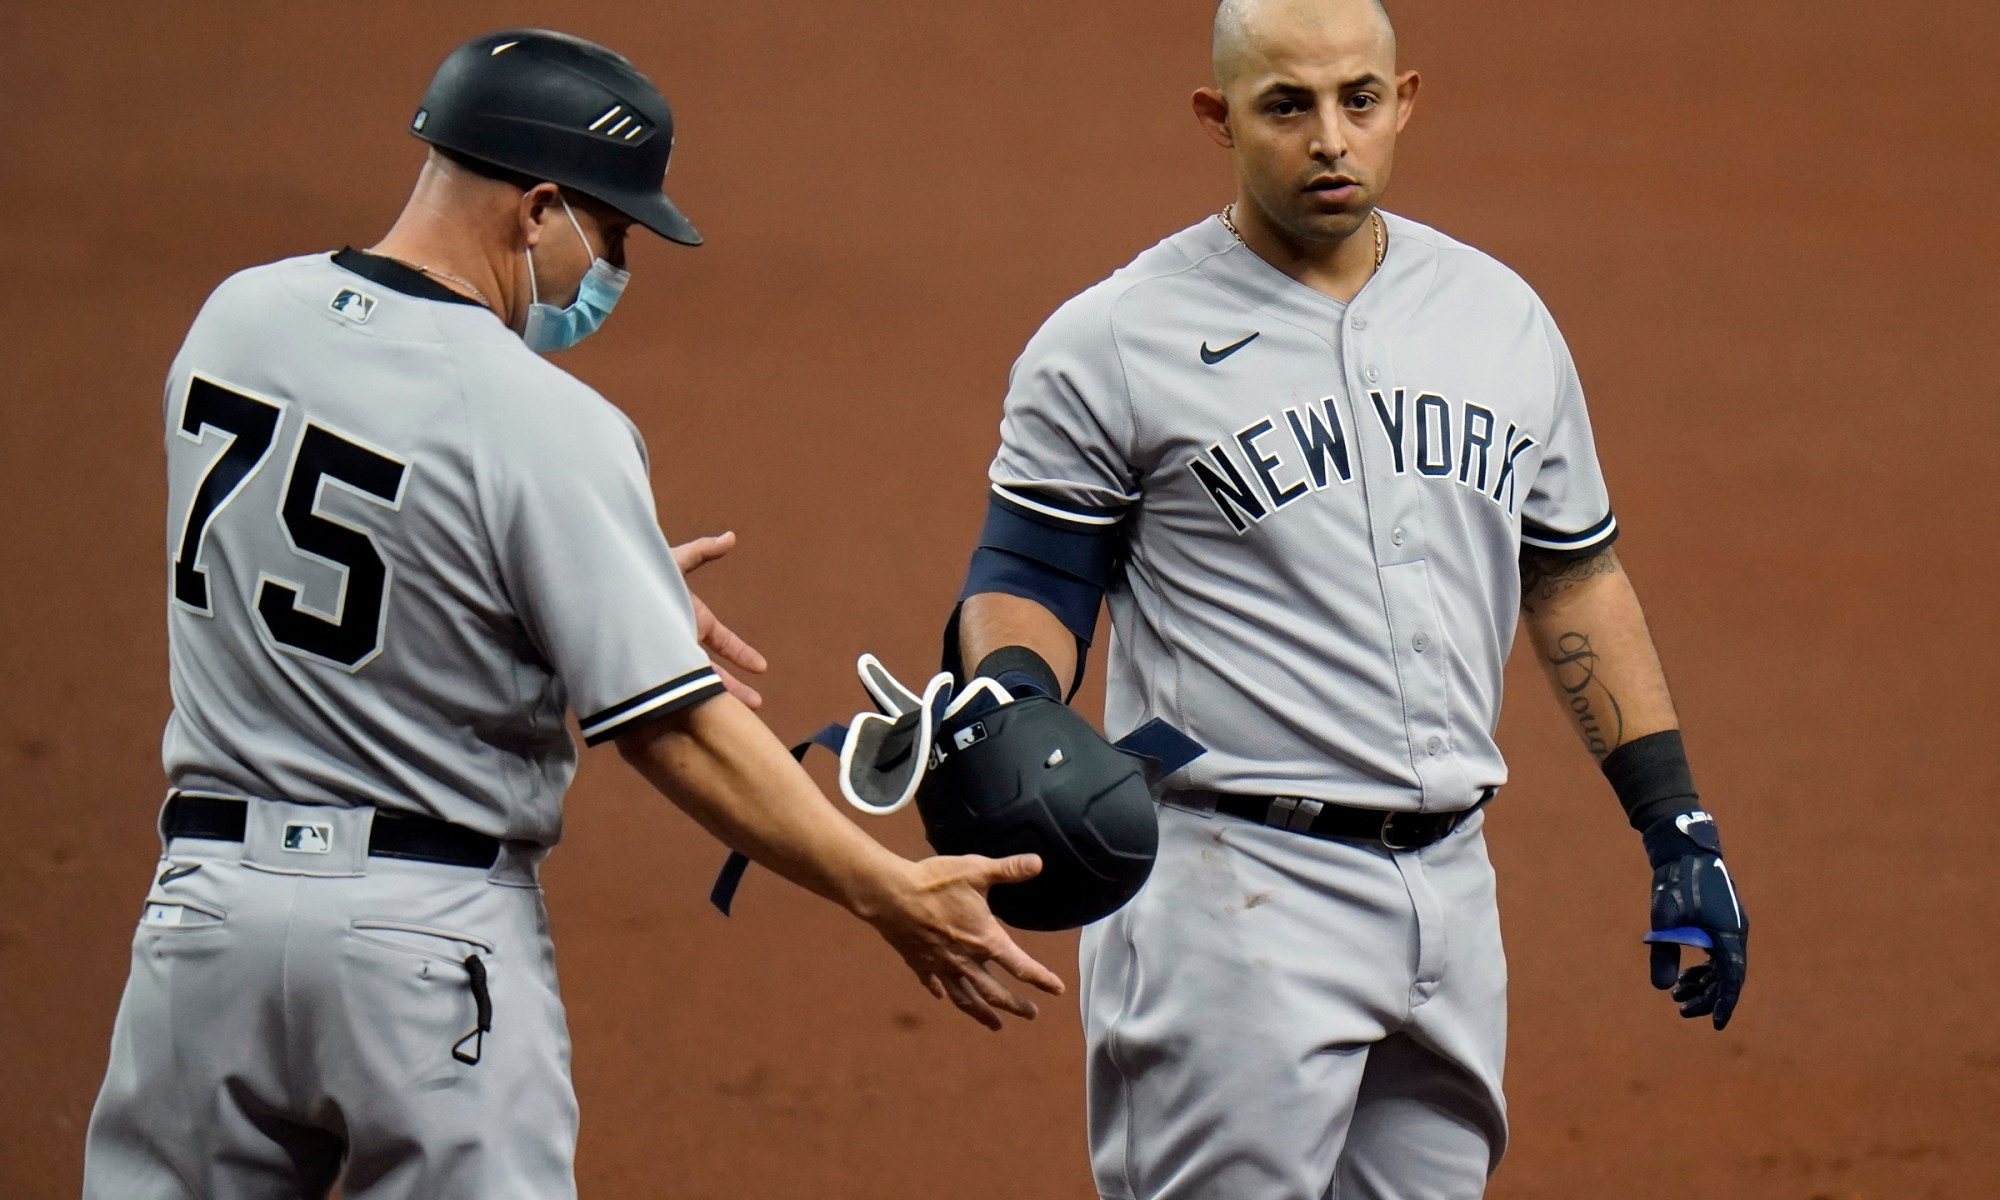 The Yankees got a huge win over the Rays. Can they get a hot streak going in Dunedin tonight?